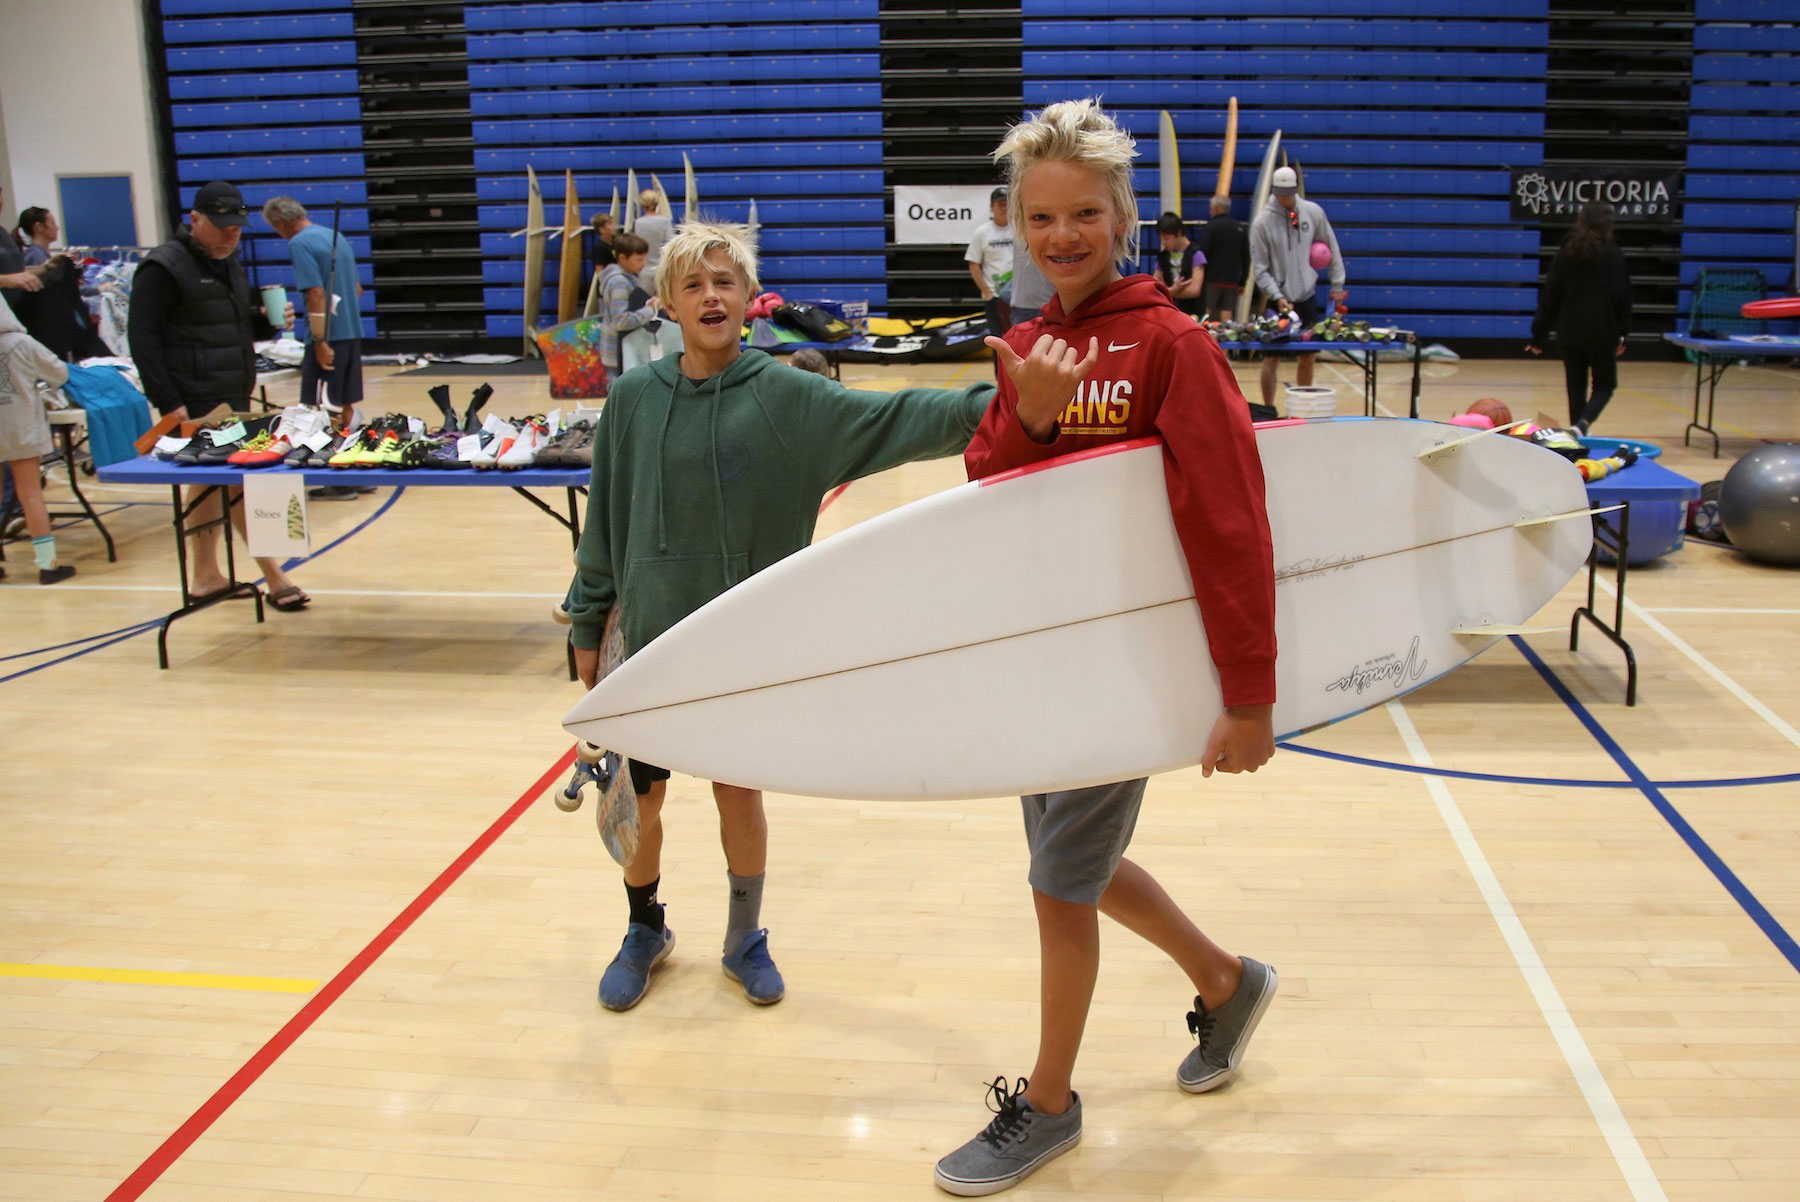 11th annual boys and surfboards